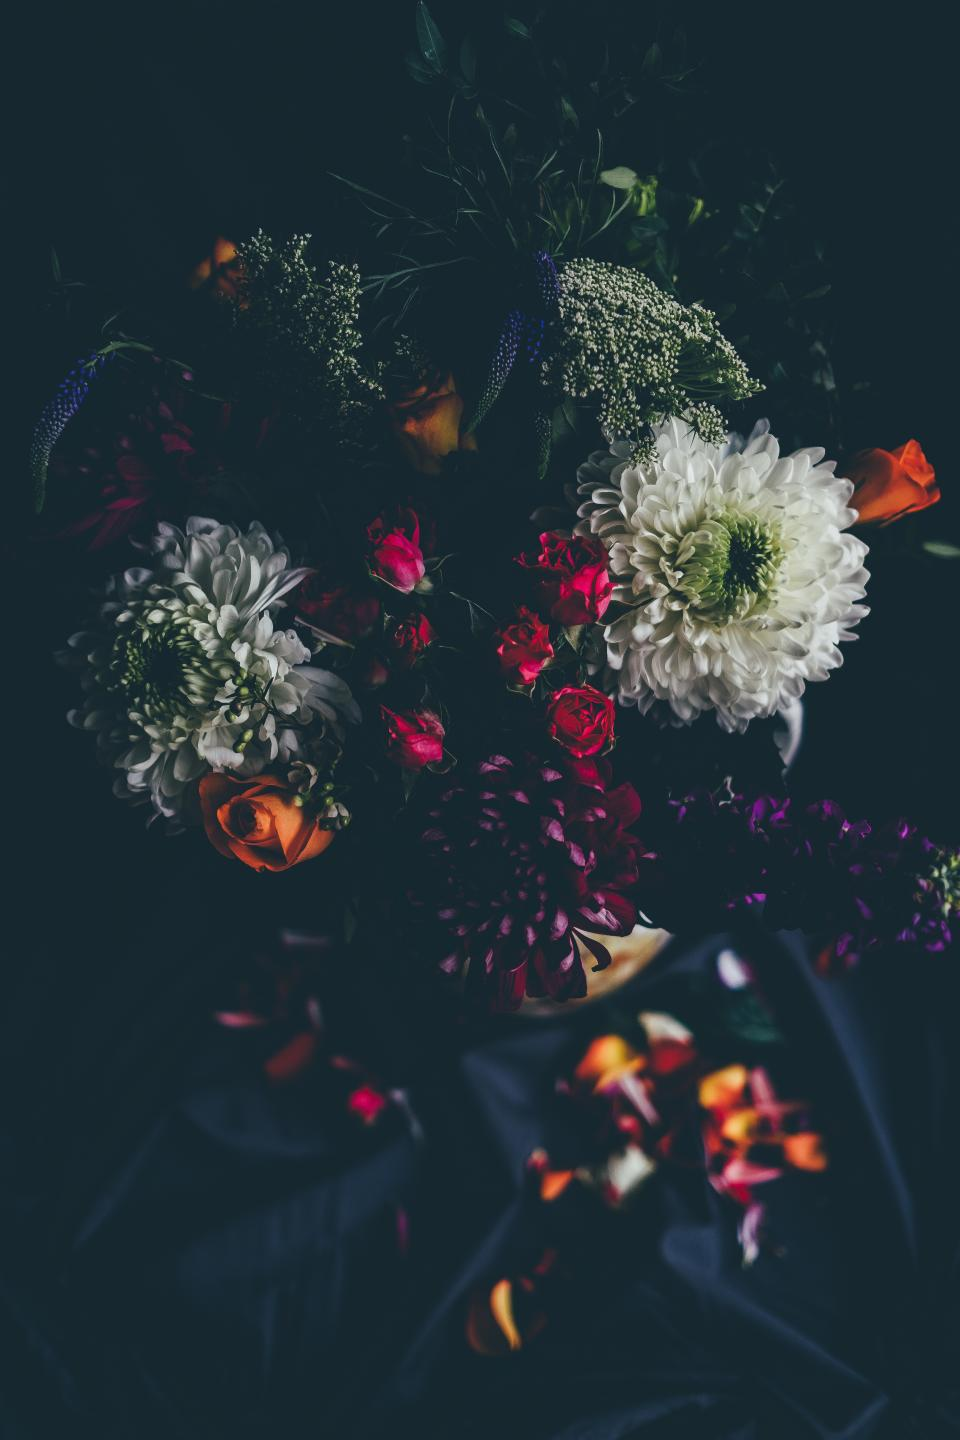 Flower Nature Blossom Blur Bokeh Black Petals Dark Beautiful Aesthetic Rose Bouquet Stock Images Page Everypixel